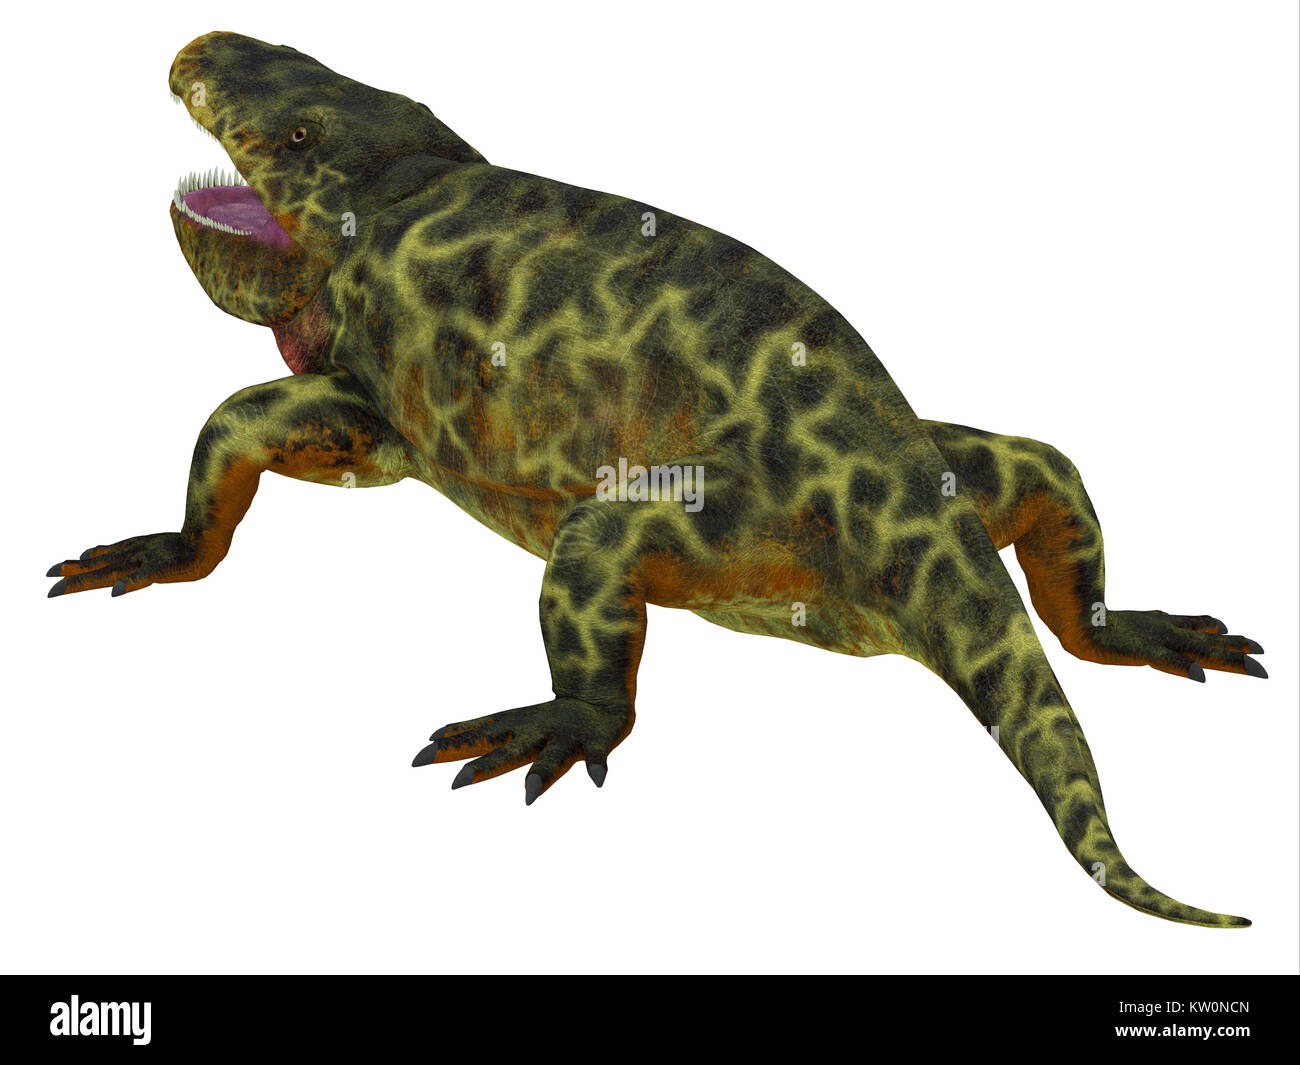 Eryops Dinosaur Tail - Eryops was an semi-aquatic ambush predator much like the modern crocodile and lived in Texas, - Stock Image